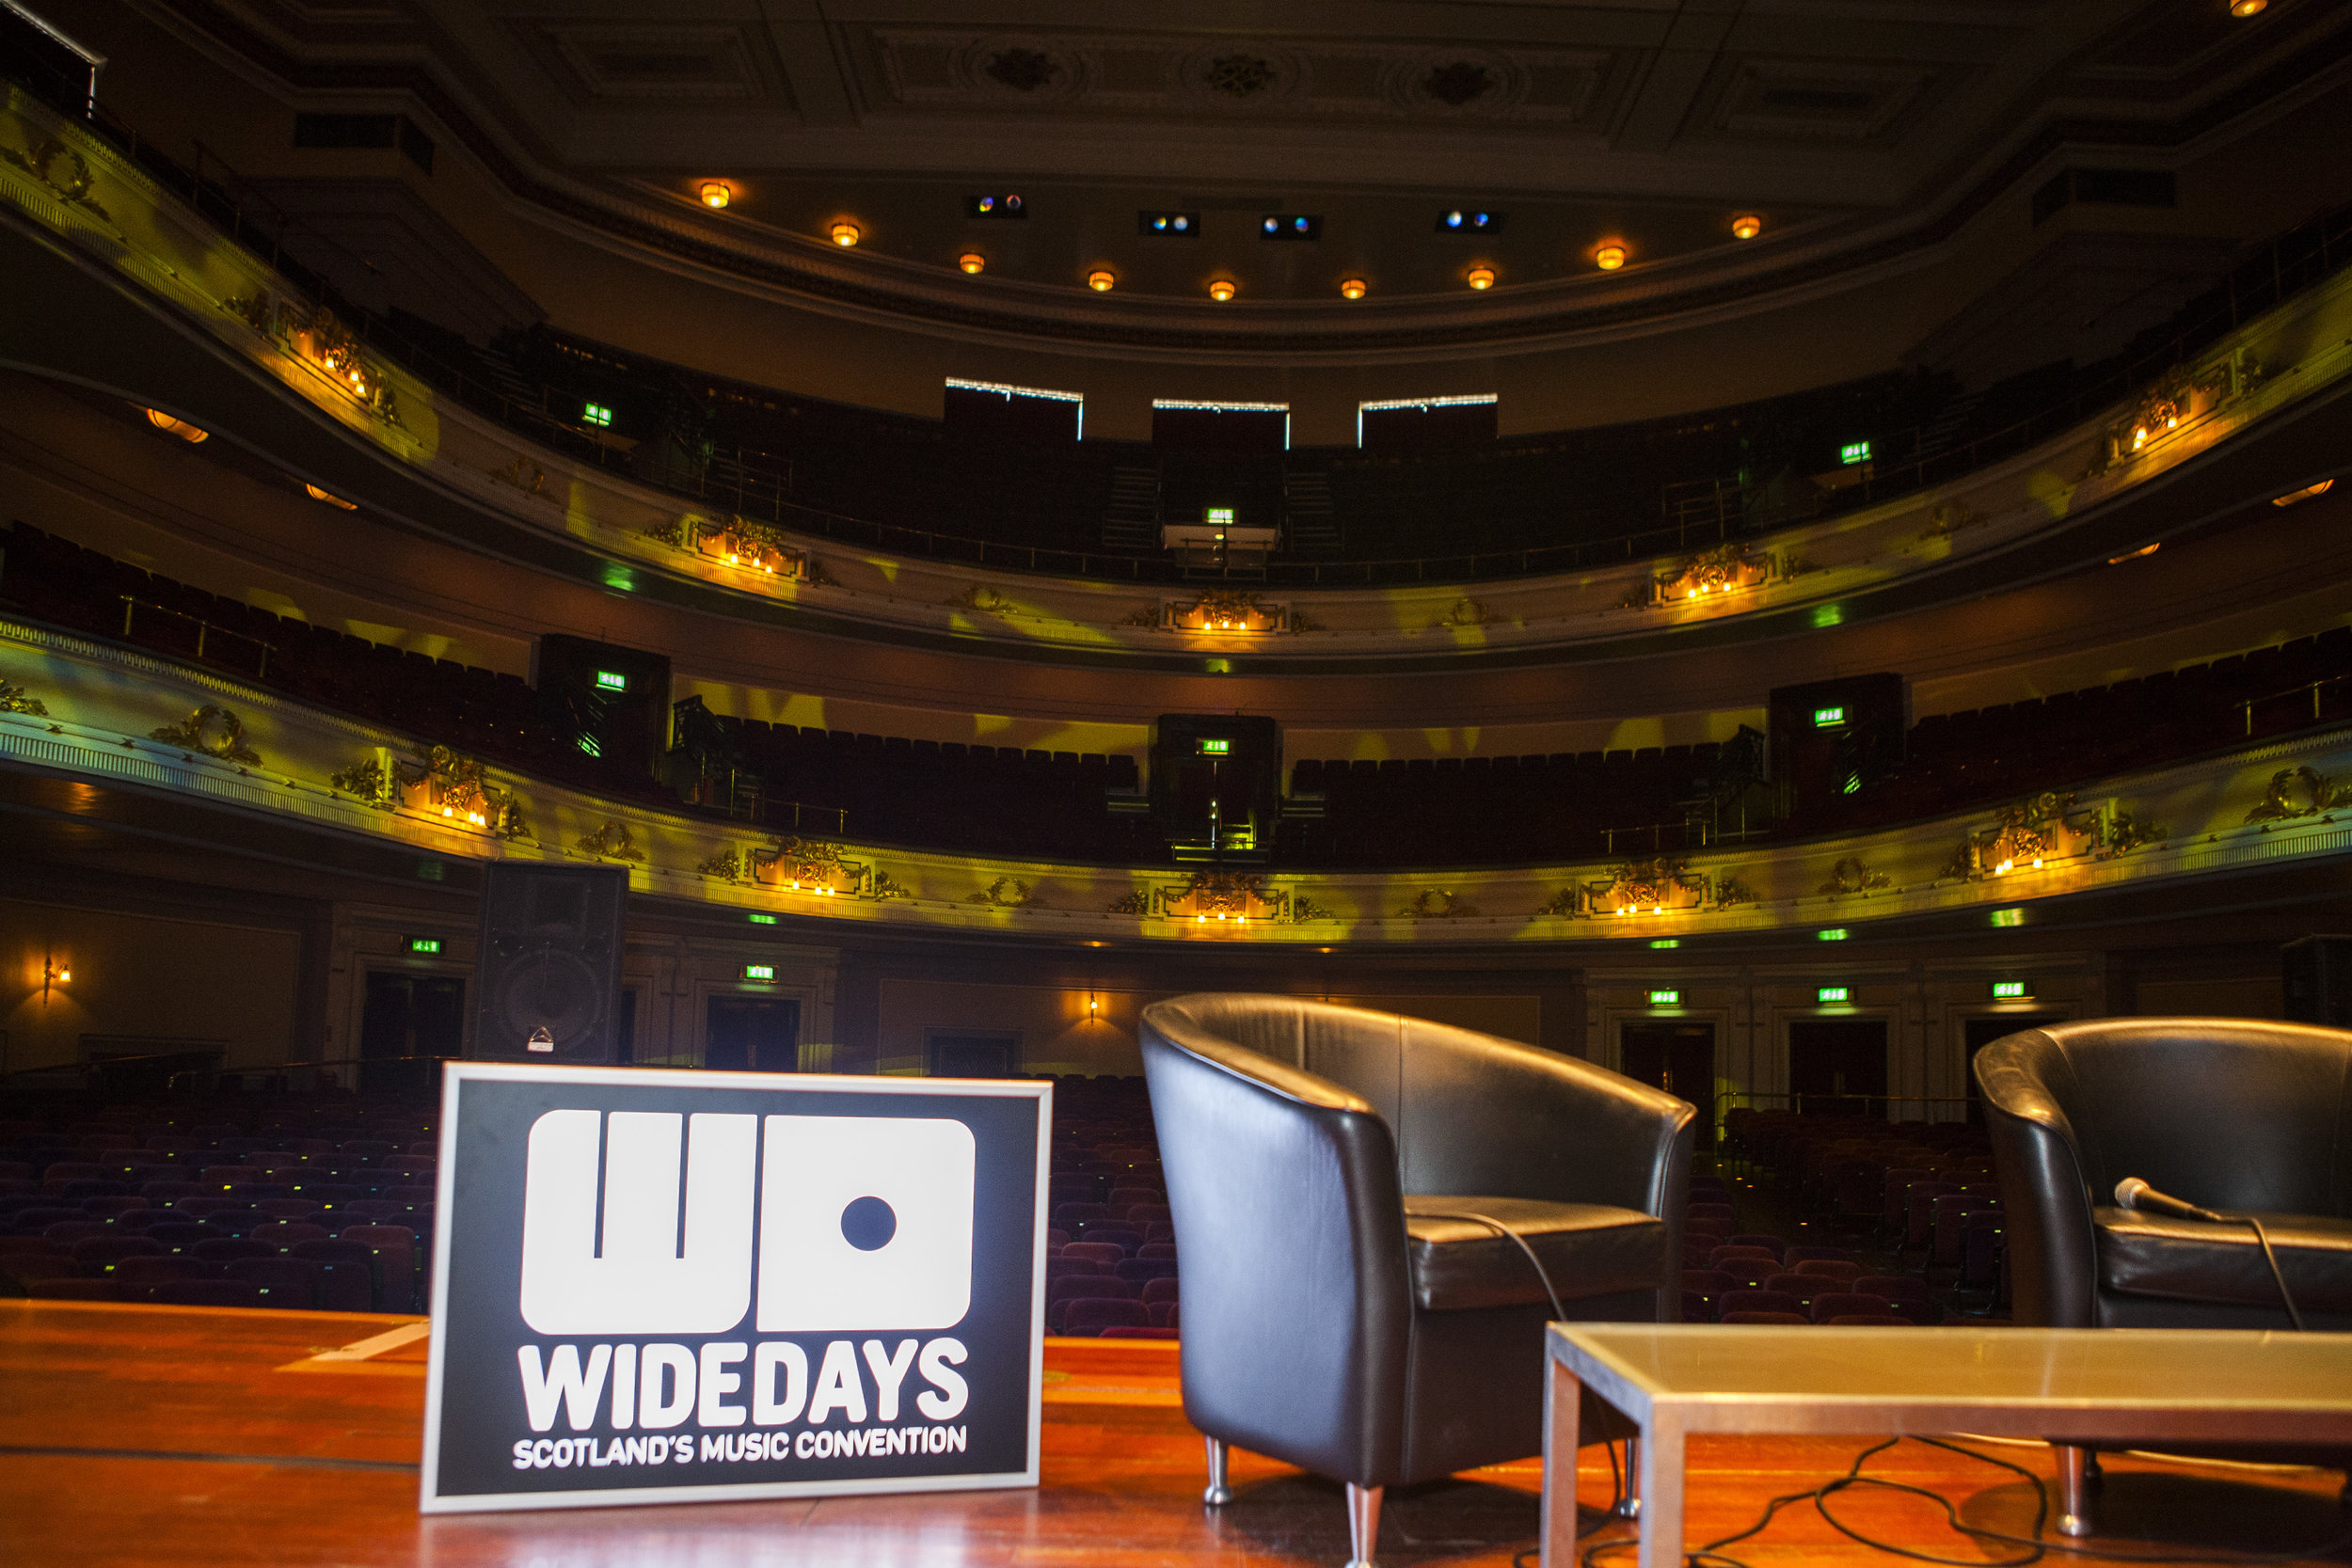 Networking day at The Usher Hall JPG